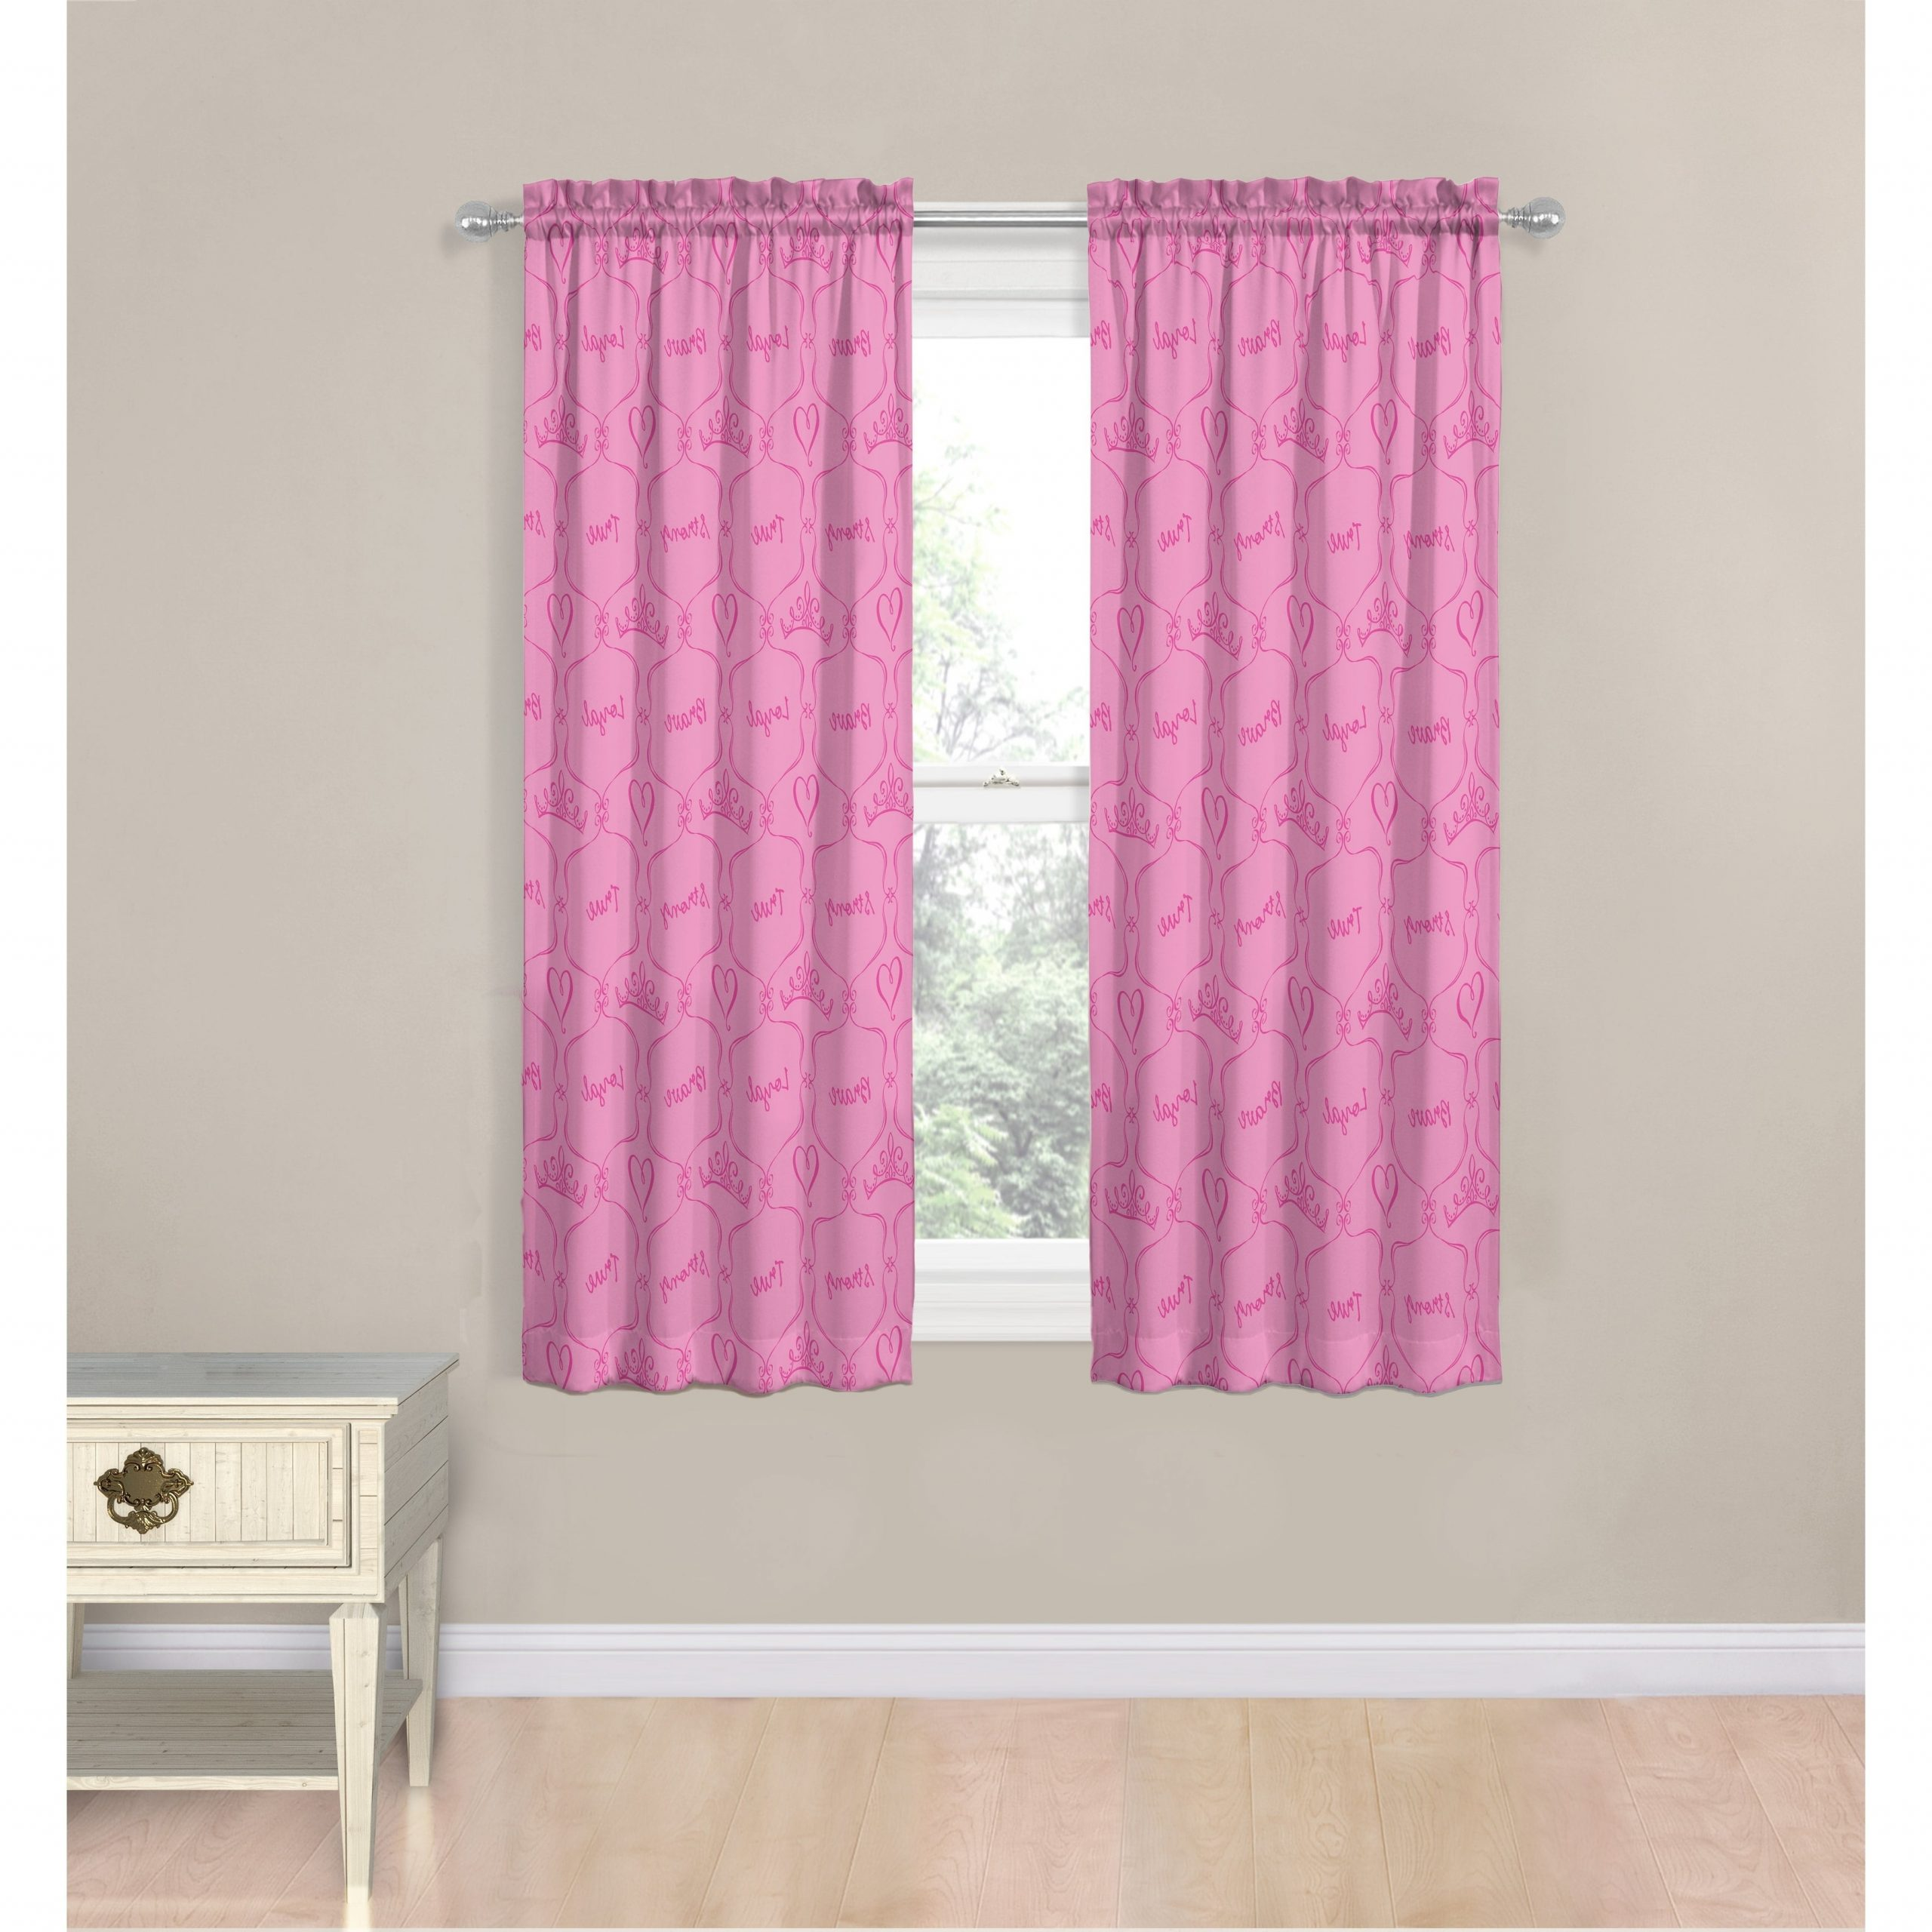 """2021 Disney Princess Friendship Adventures 63"""" Decorative Curtain Set In Classic Hotel Quality Water Resistant Fabric Curtains Set With Tiebacks (View 2 of 20)"""